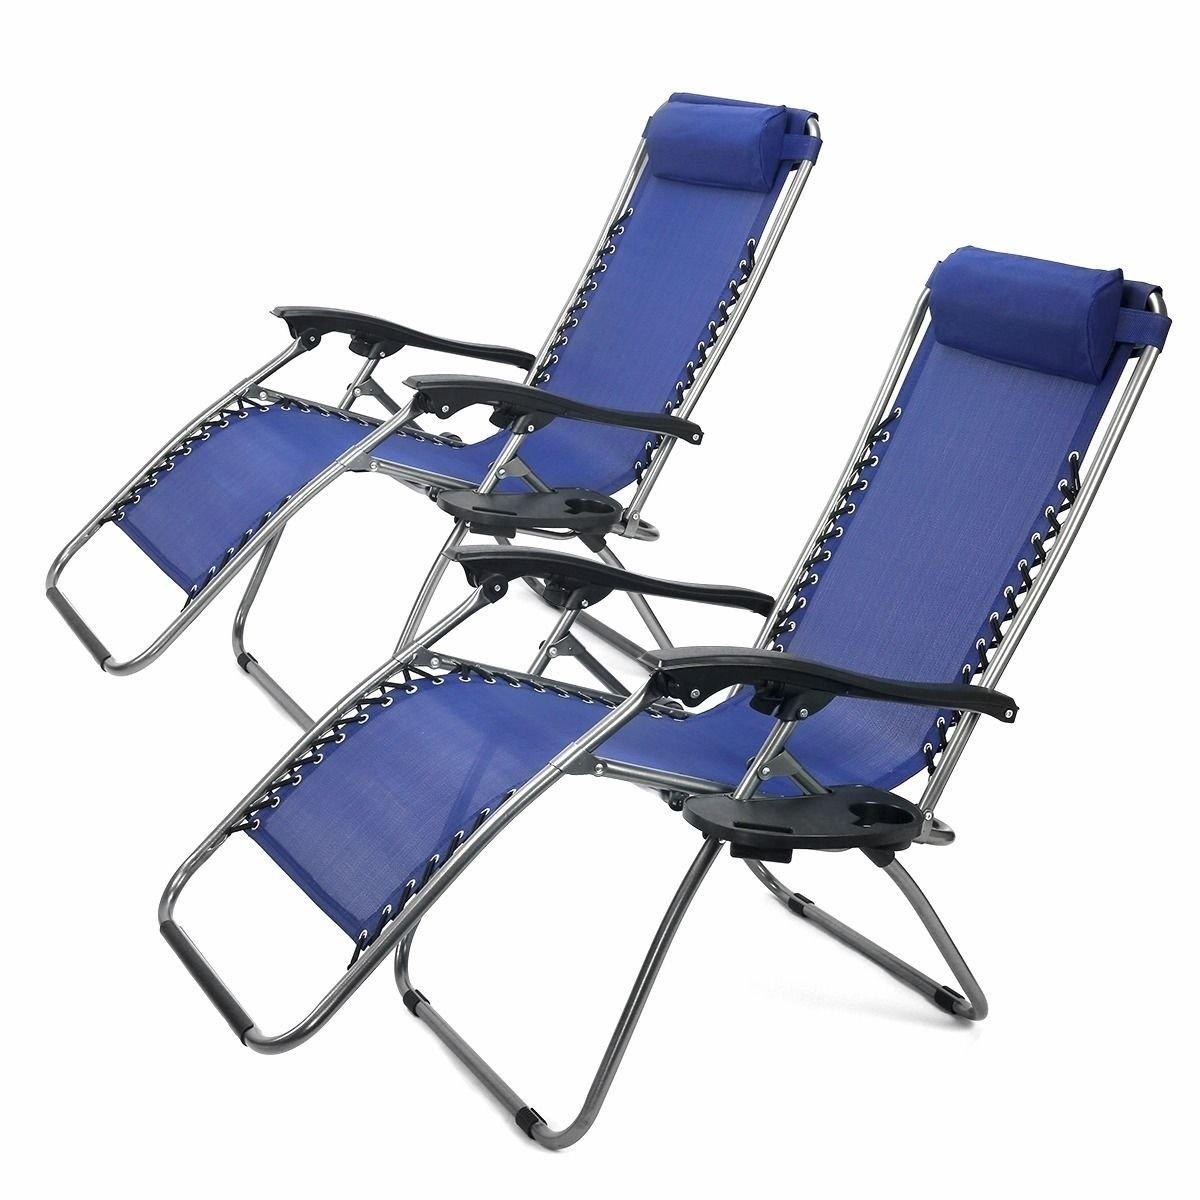 New 1Pair Blue Zero Gravity Lounge Chairs Recliner Outdoor Beach Patio Pool